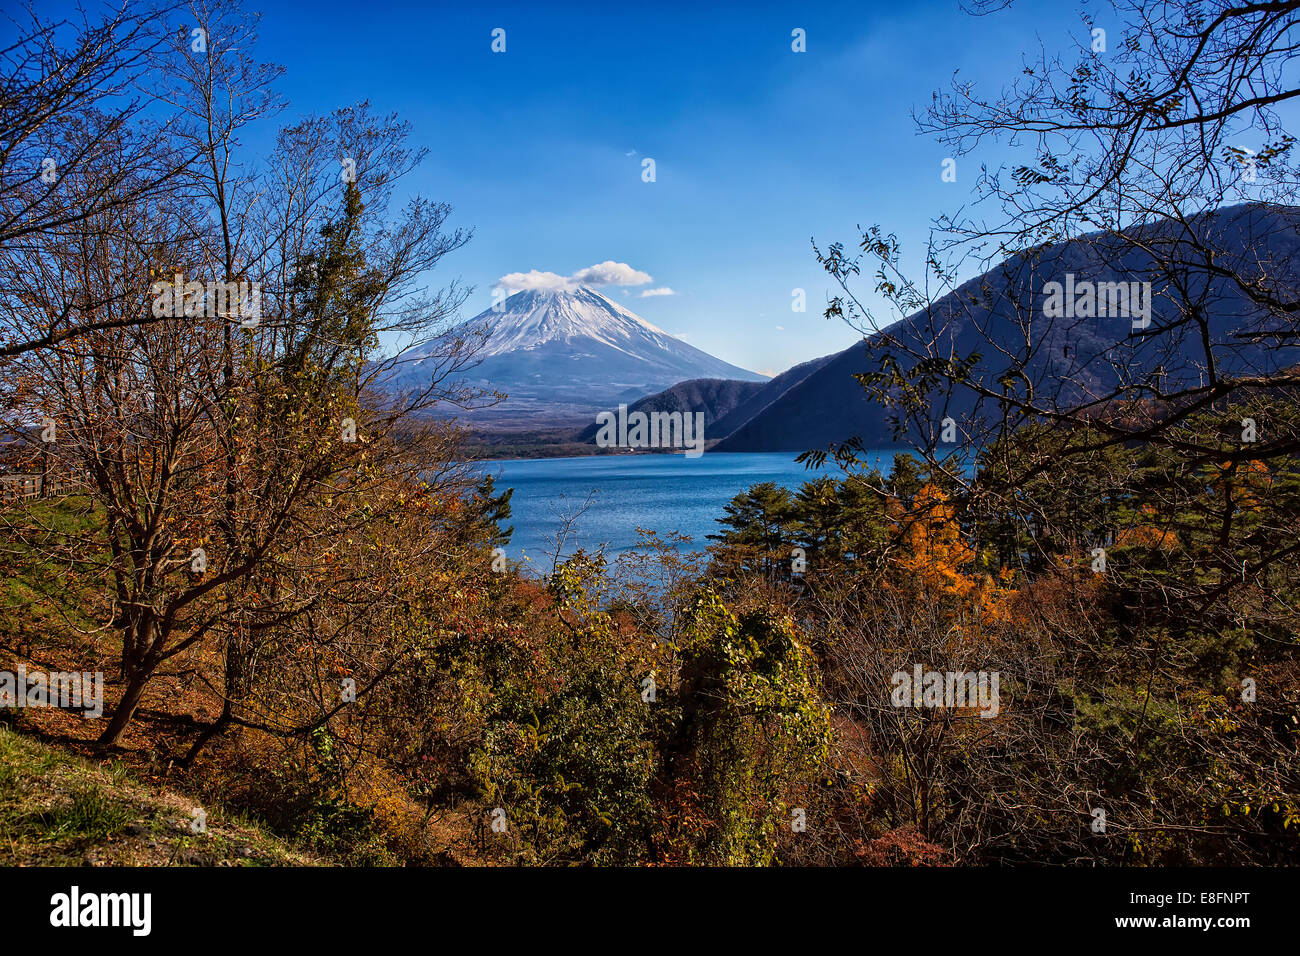 Japan, Yamanashi Prefecture, View of Mt Fuji - Stock Image